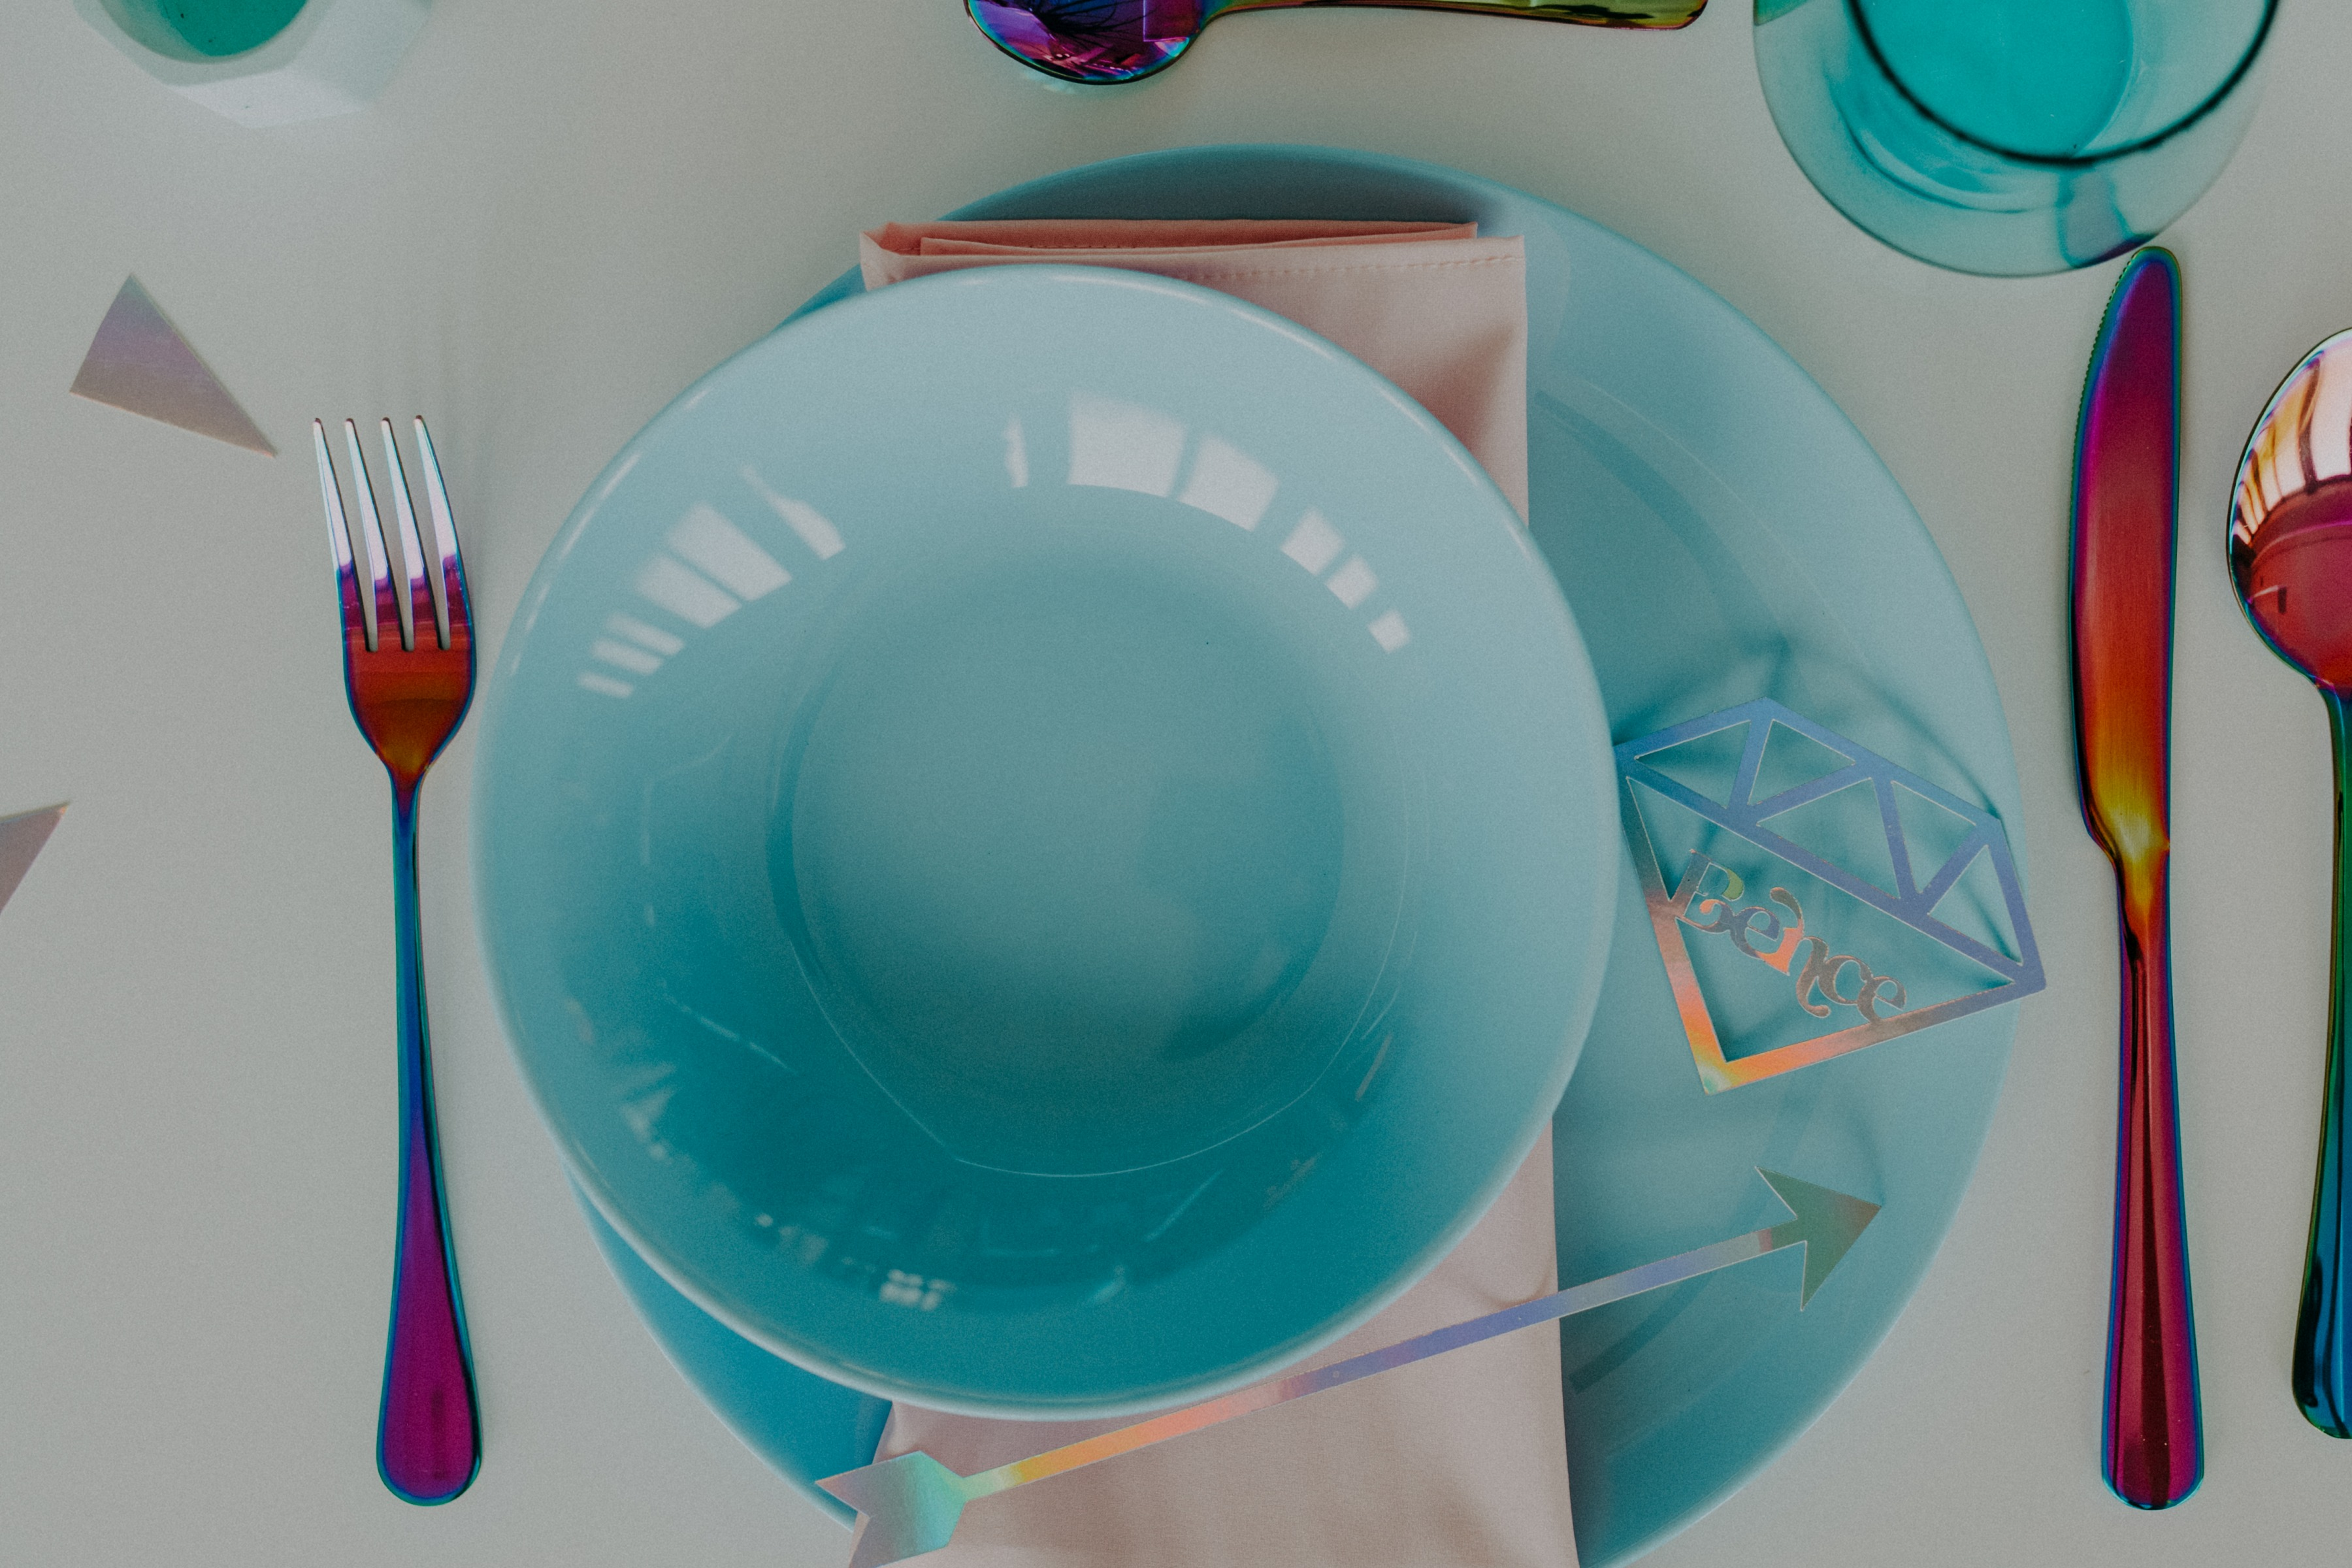 colourful pastel wedding - unconventional wedding - alternative wedding - colourful wedding crockery